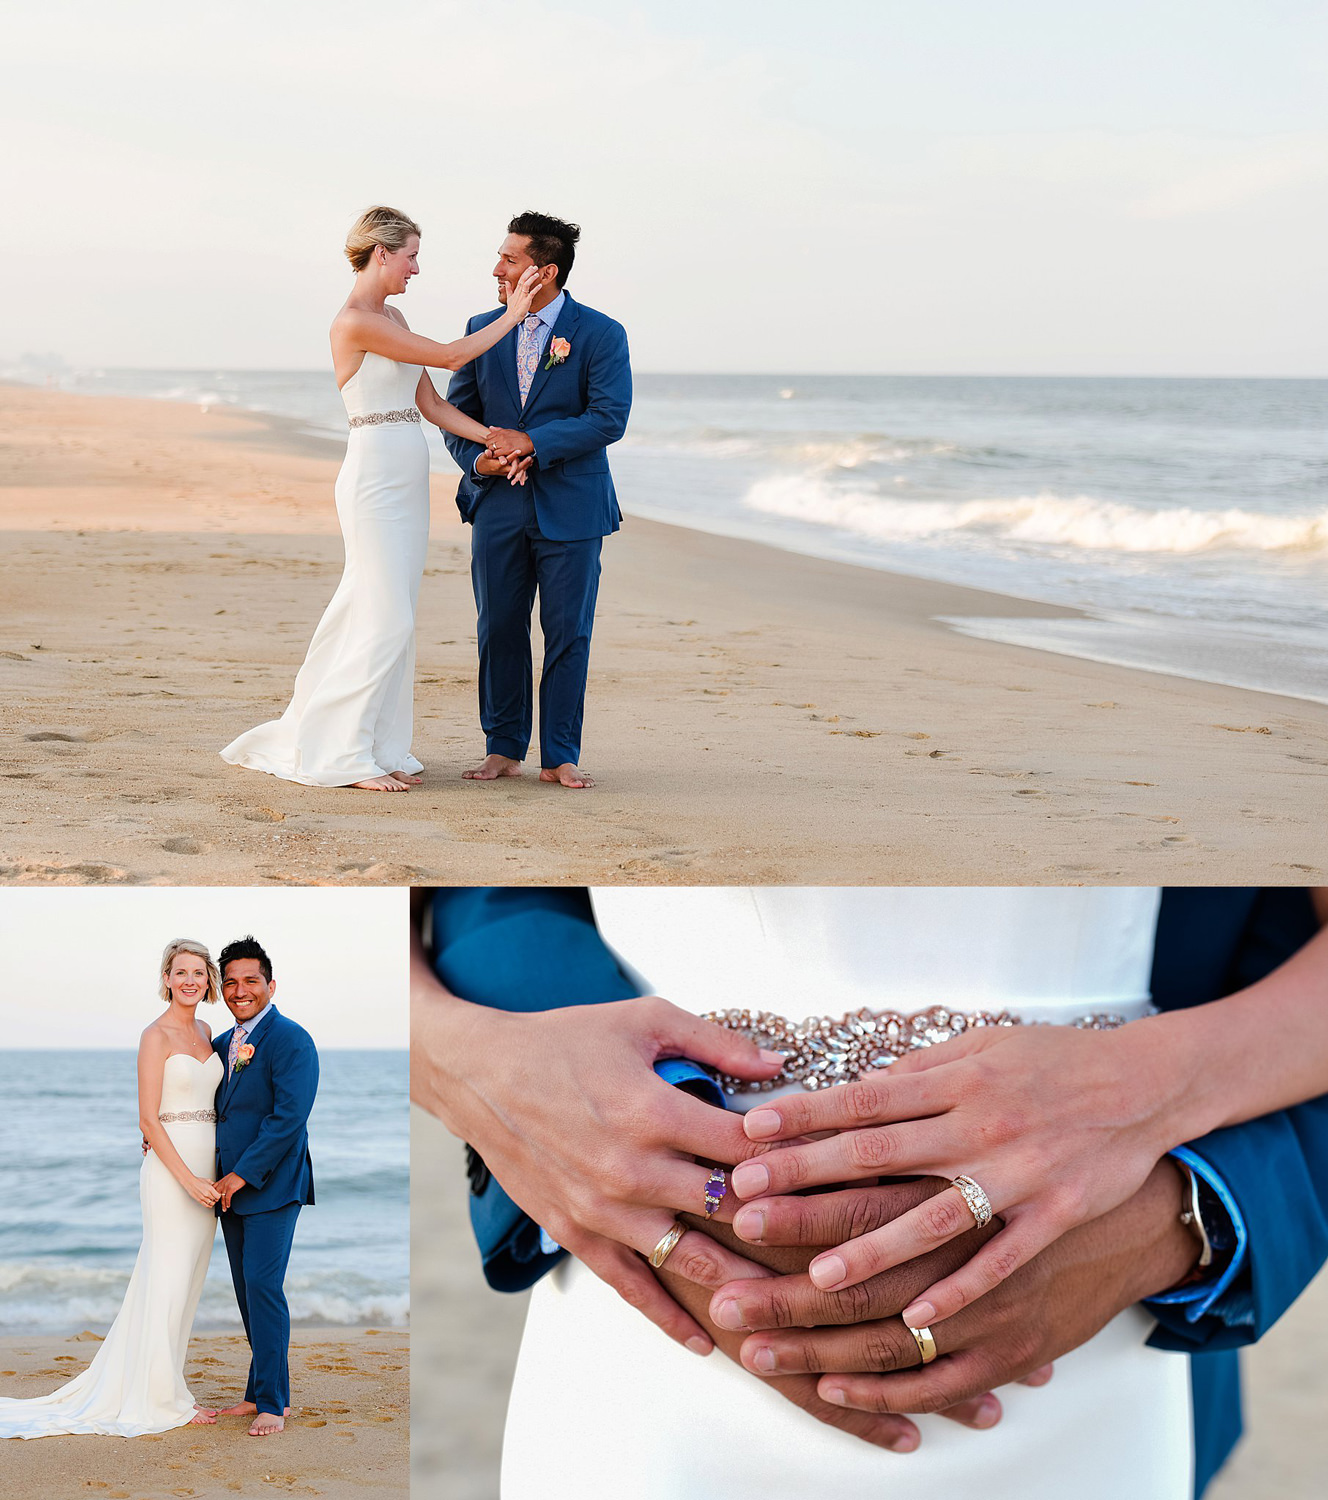 beach-wedding-photos-sandbridge-virginia-beach-melissa-bliss-photography.jpg